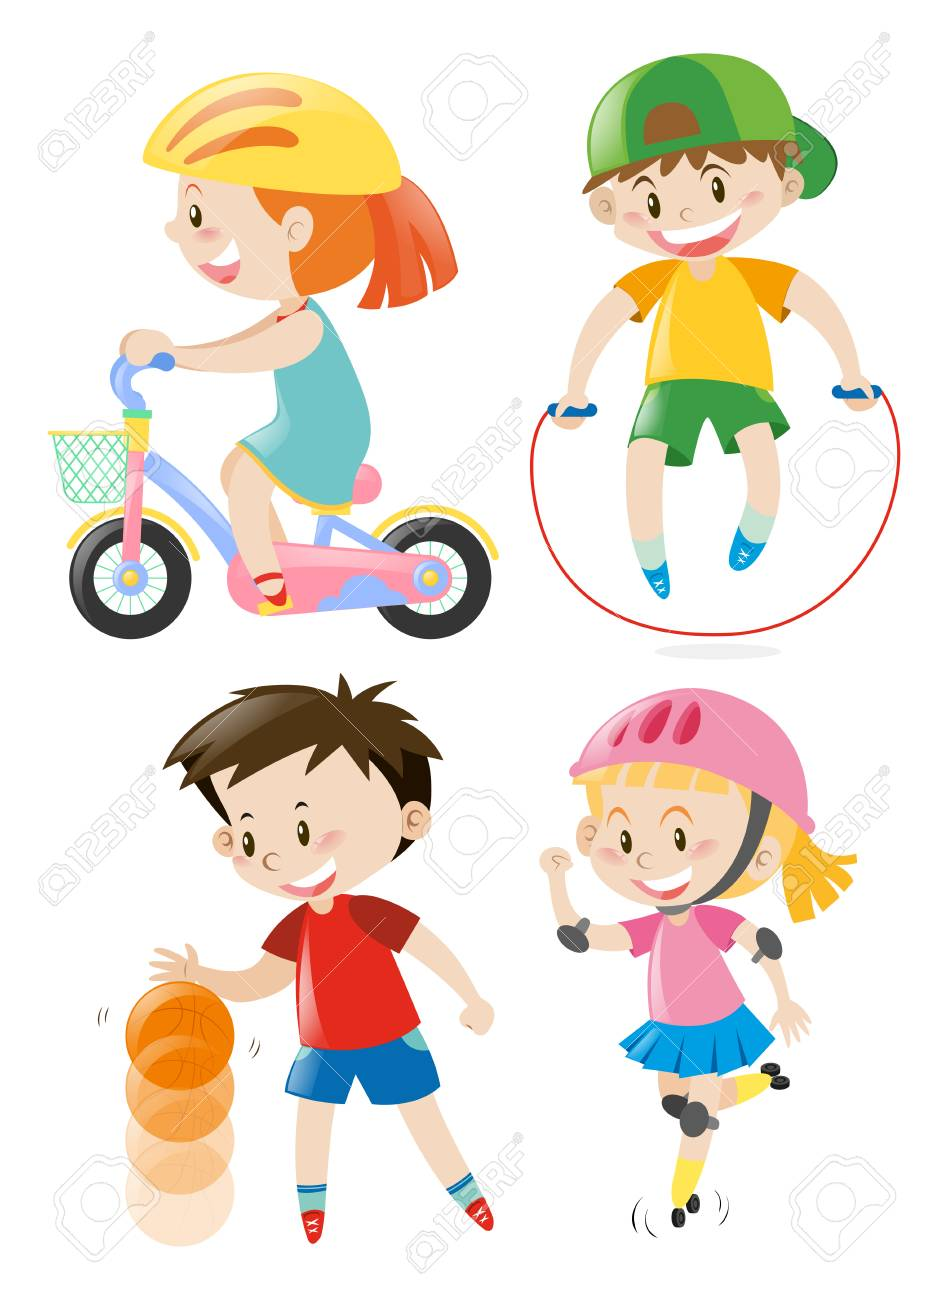 Kids Doing Different Types Of Exercises Illustration Royalty Free Cliparts Vectors And Stock Illustration Image 68177957